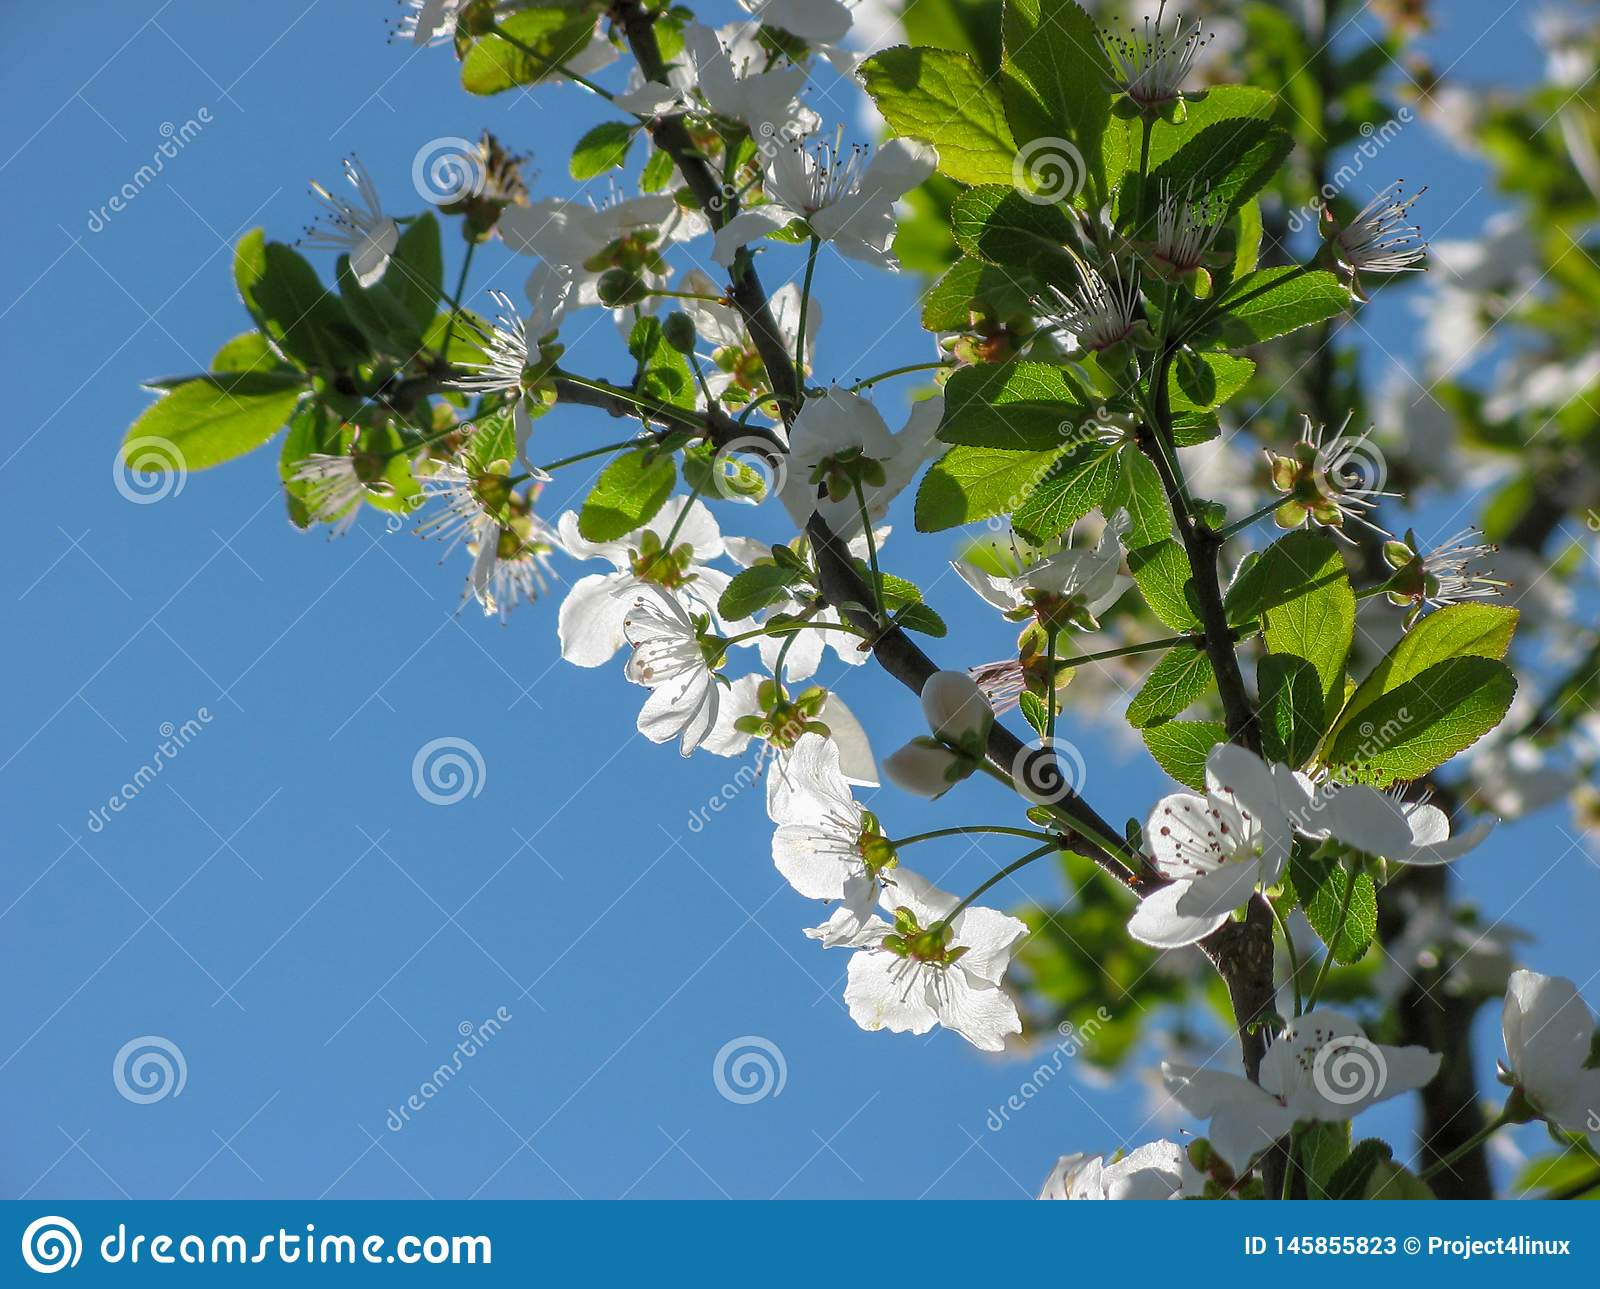 Plum tree blossoms with blue sky background